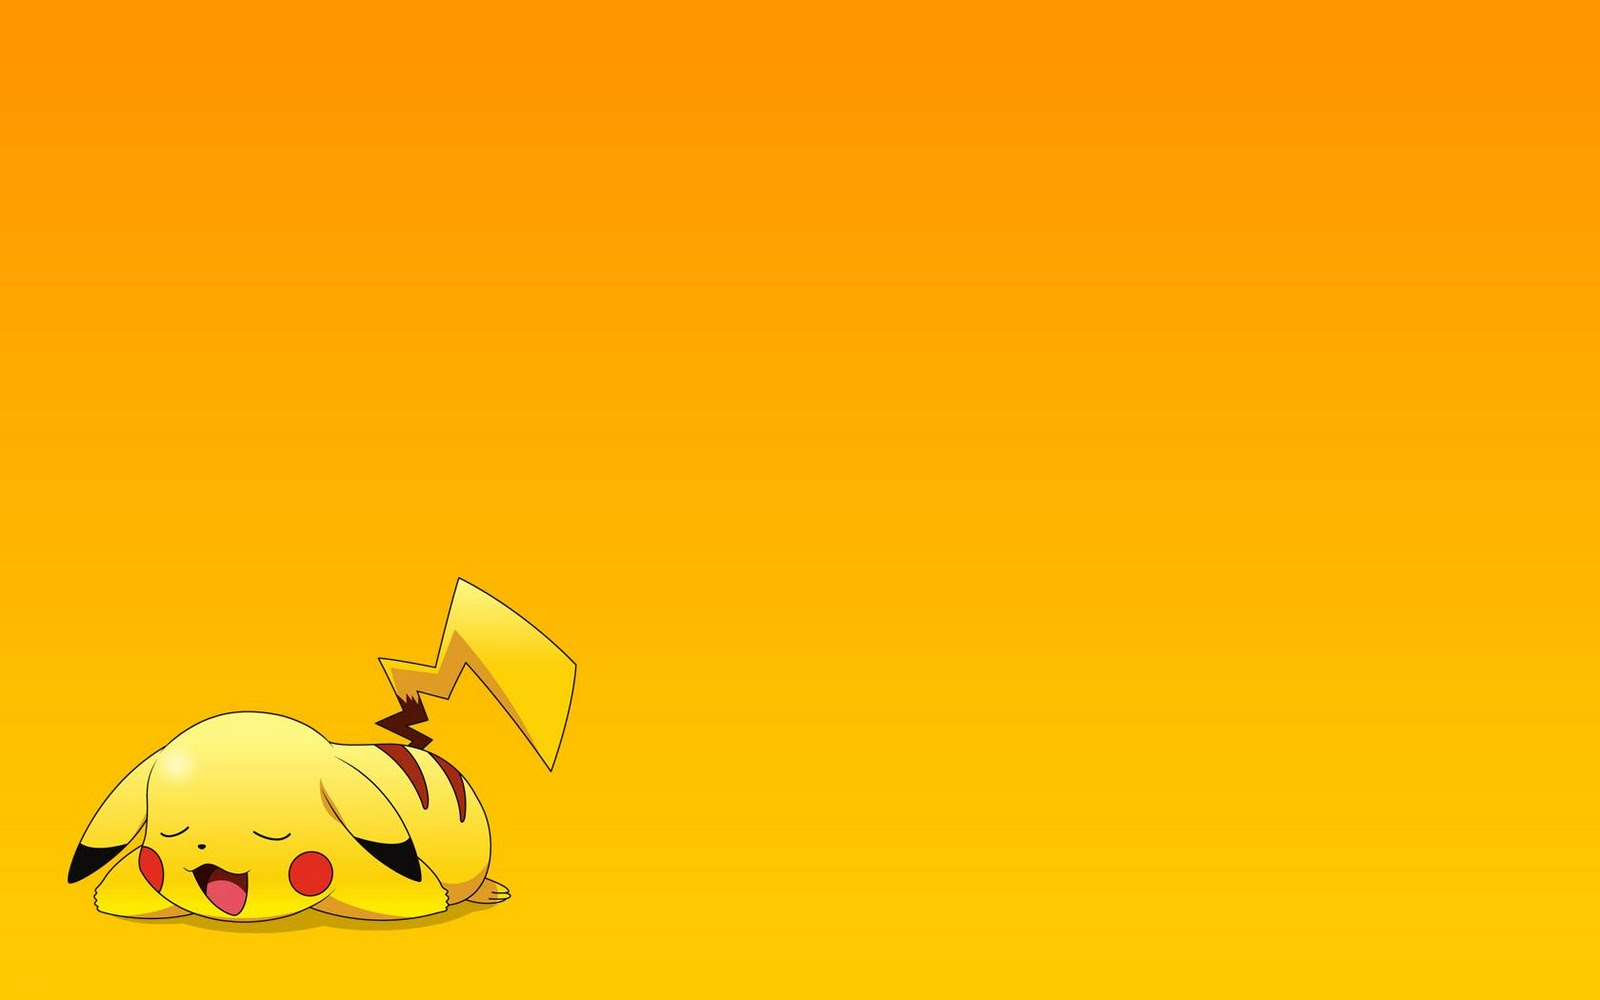 Pokemon HD Desktop Wallpapers Cartoon Wallpapers 1600x1000